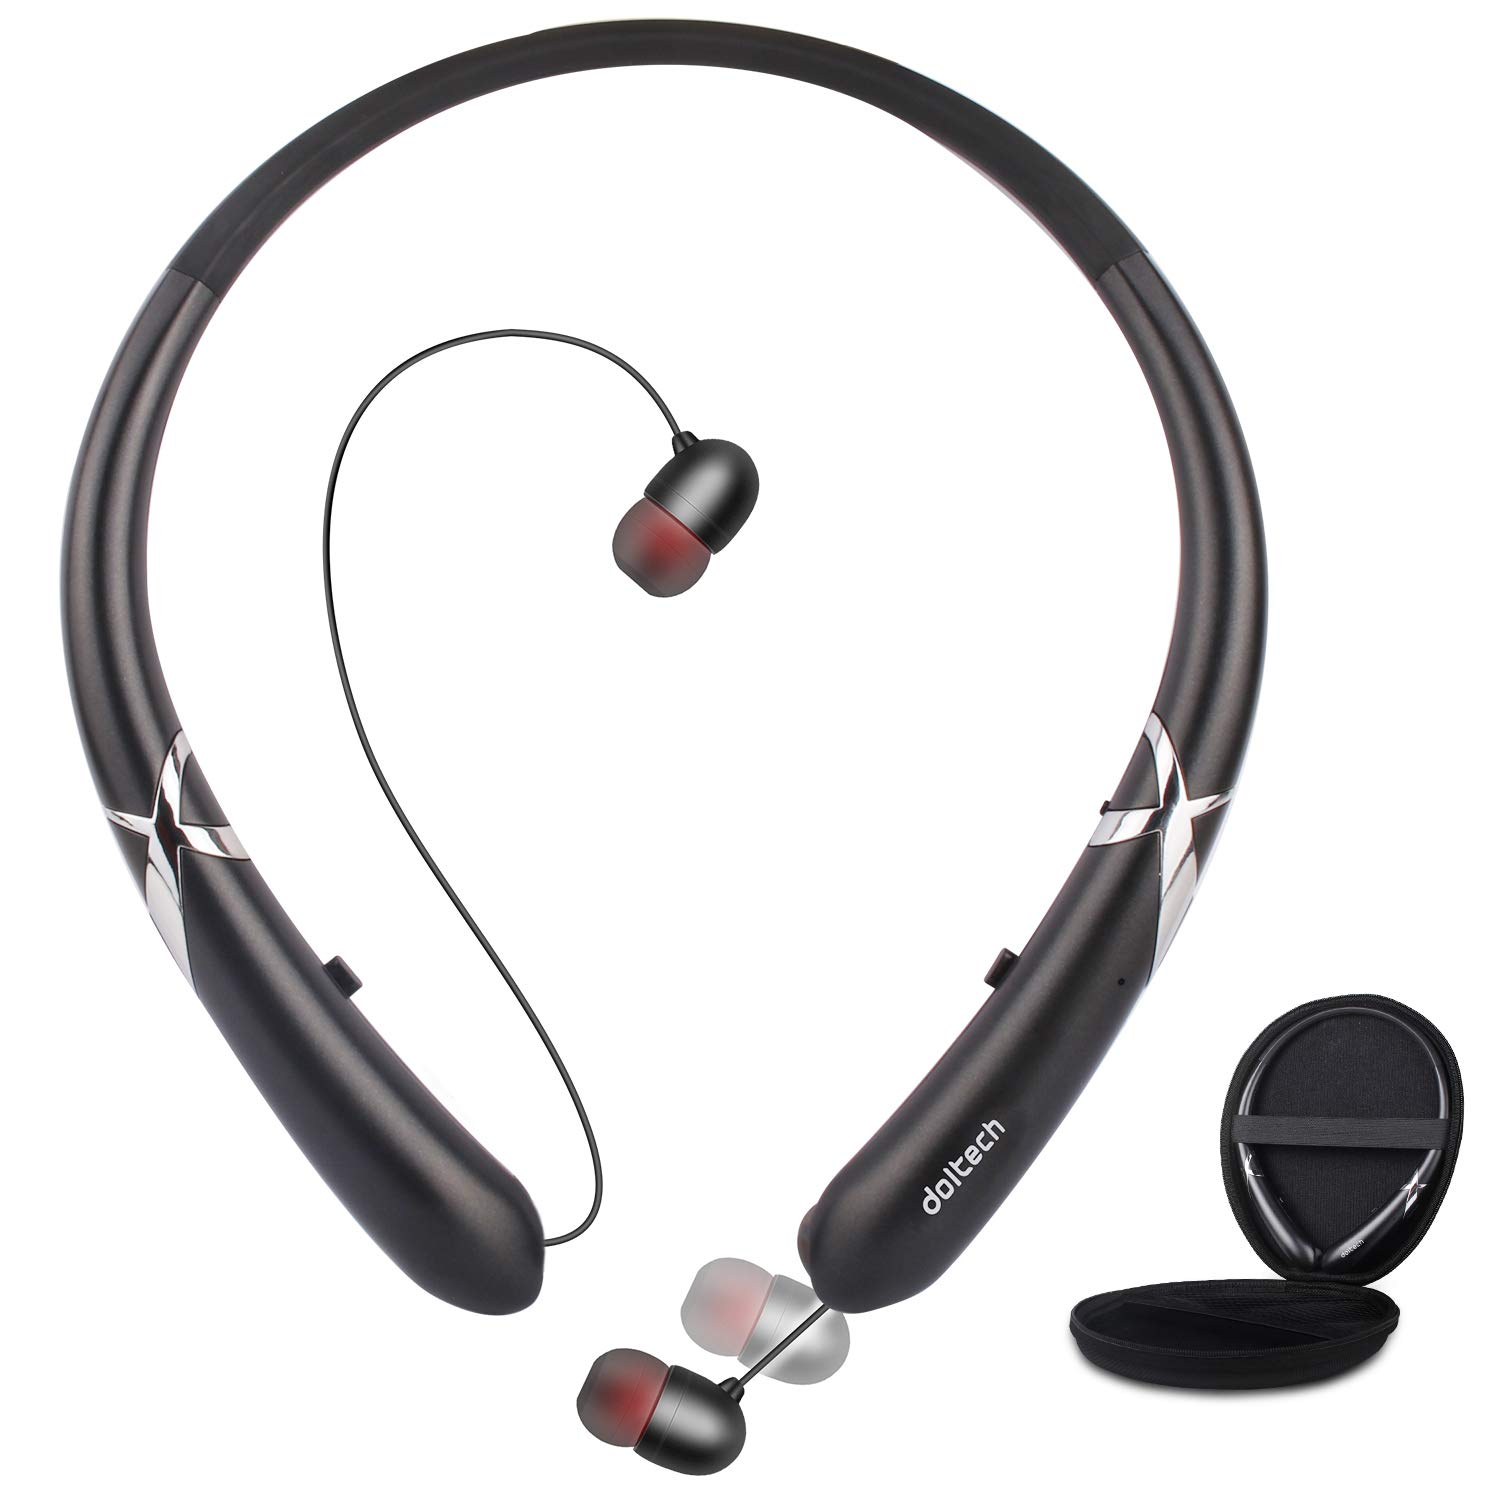 Bluetooth Headphones, Doltech Bluetooth 5.0 Neckband Headphones Noise Cancelling Headset with Carrying Bag Retractable Earbuds Stereo Earphones with Mic Black